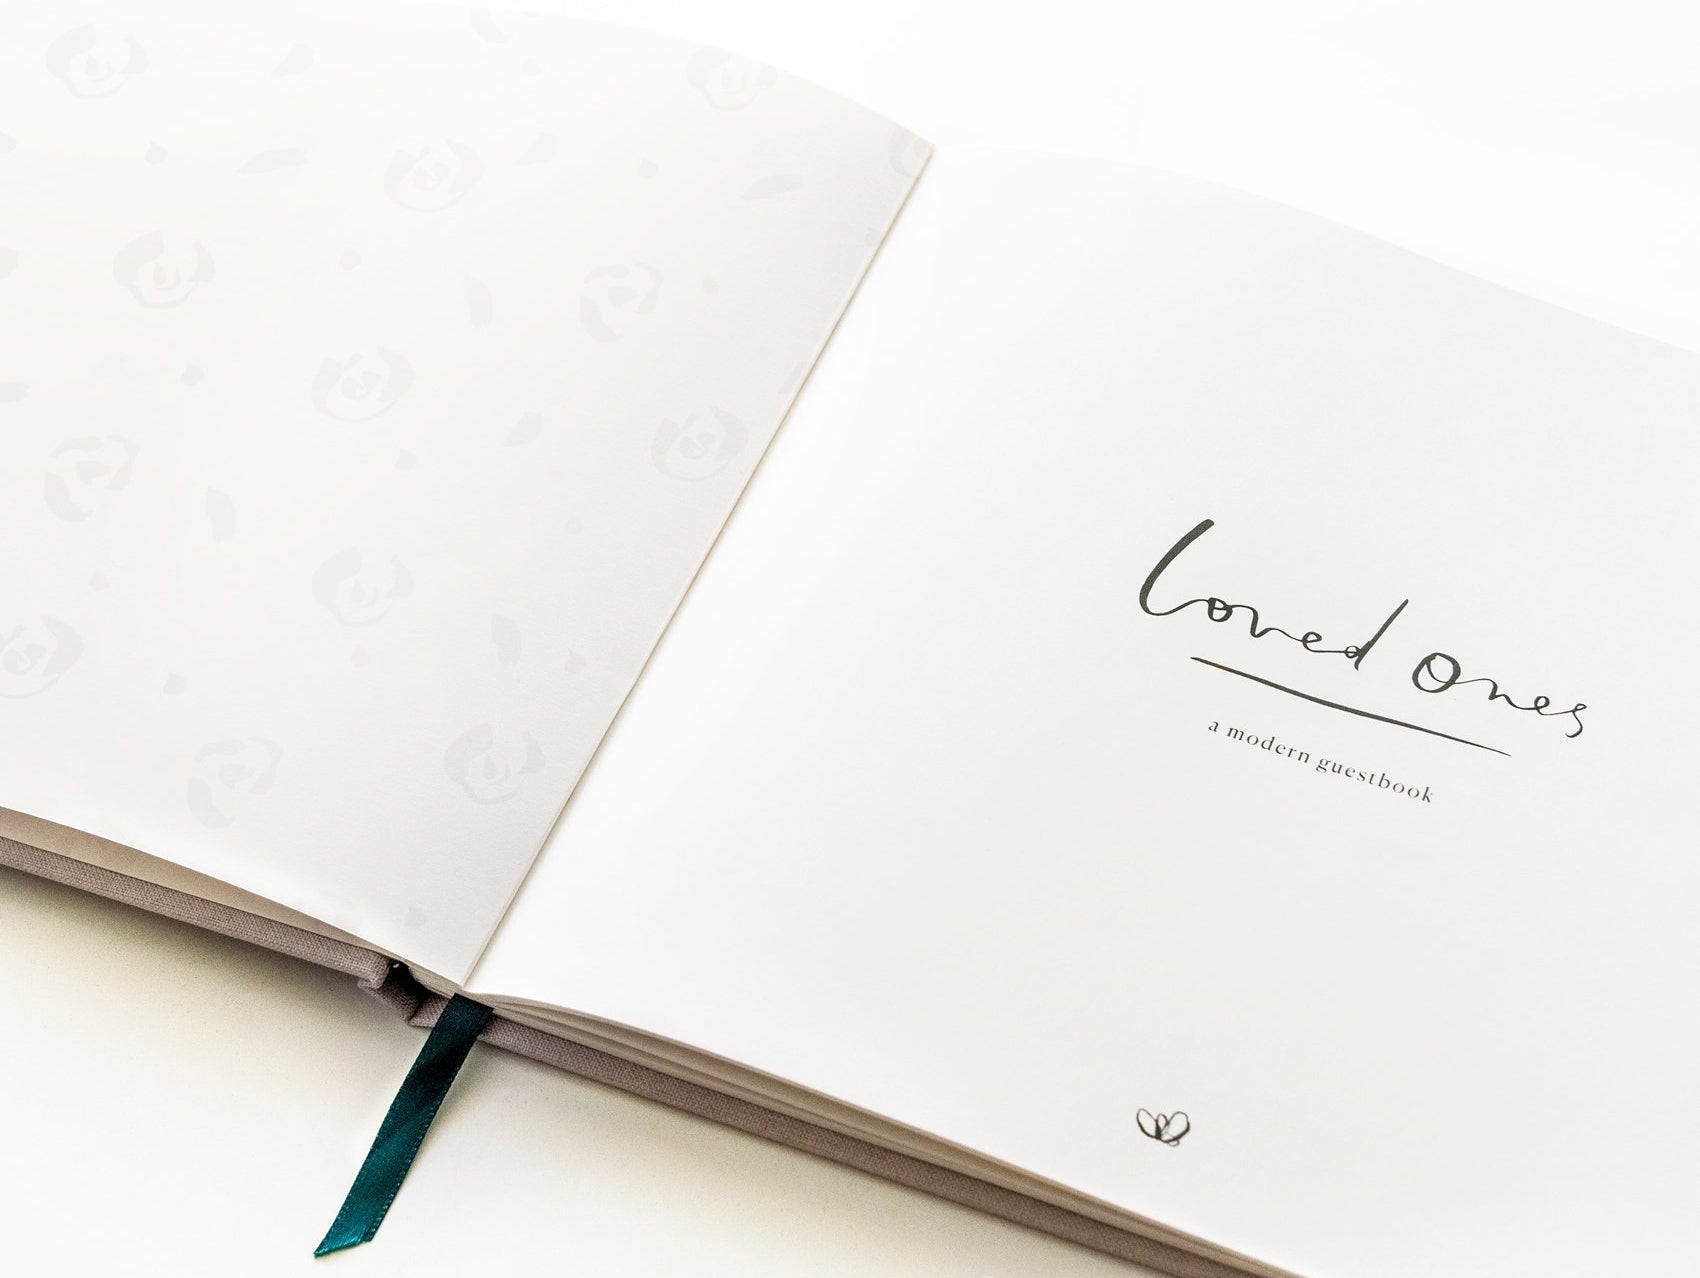 Loved Ones guest book by Our Heiday opened to title page on brilliant white background with satin forest green ribbon bookmark